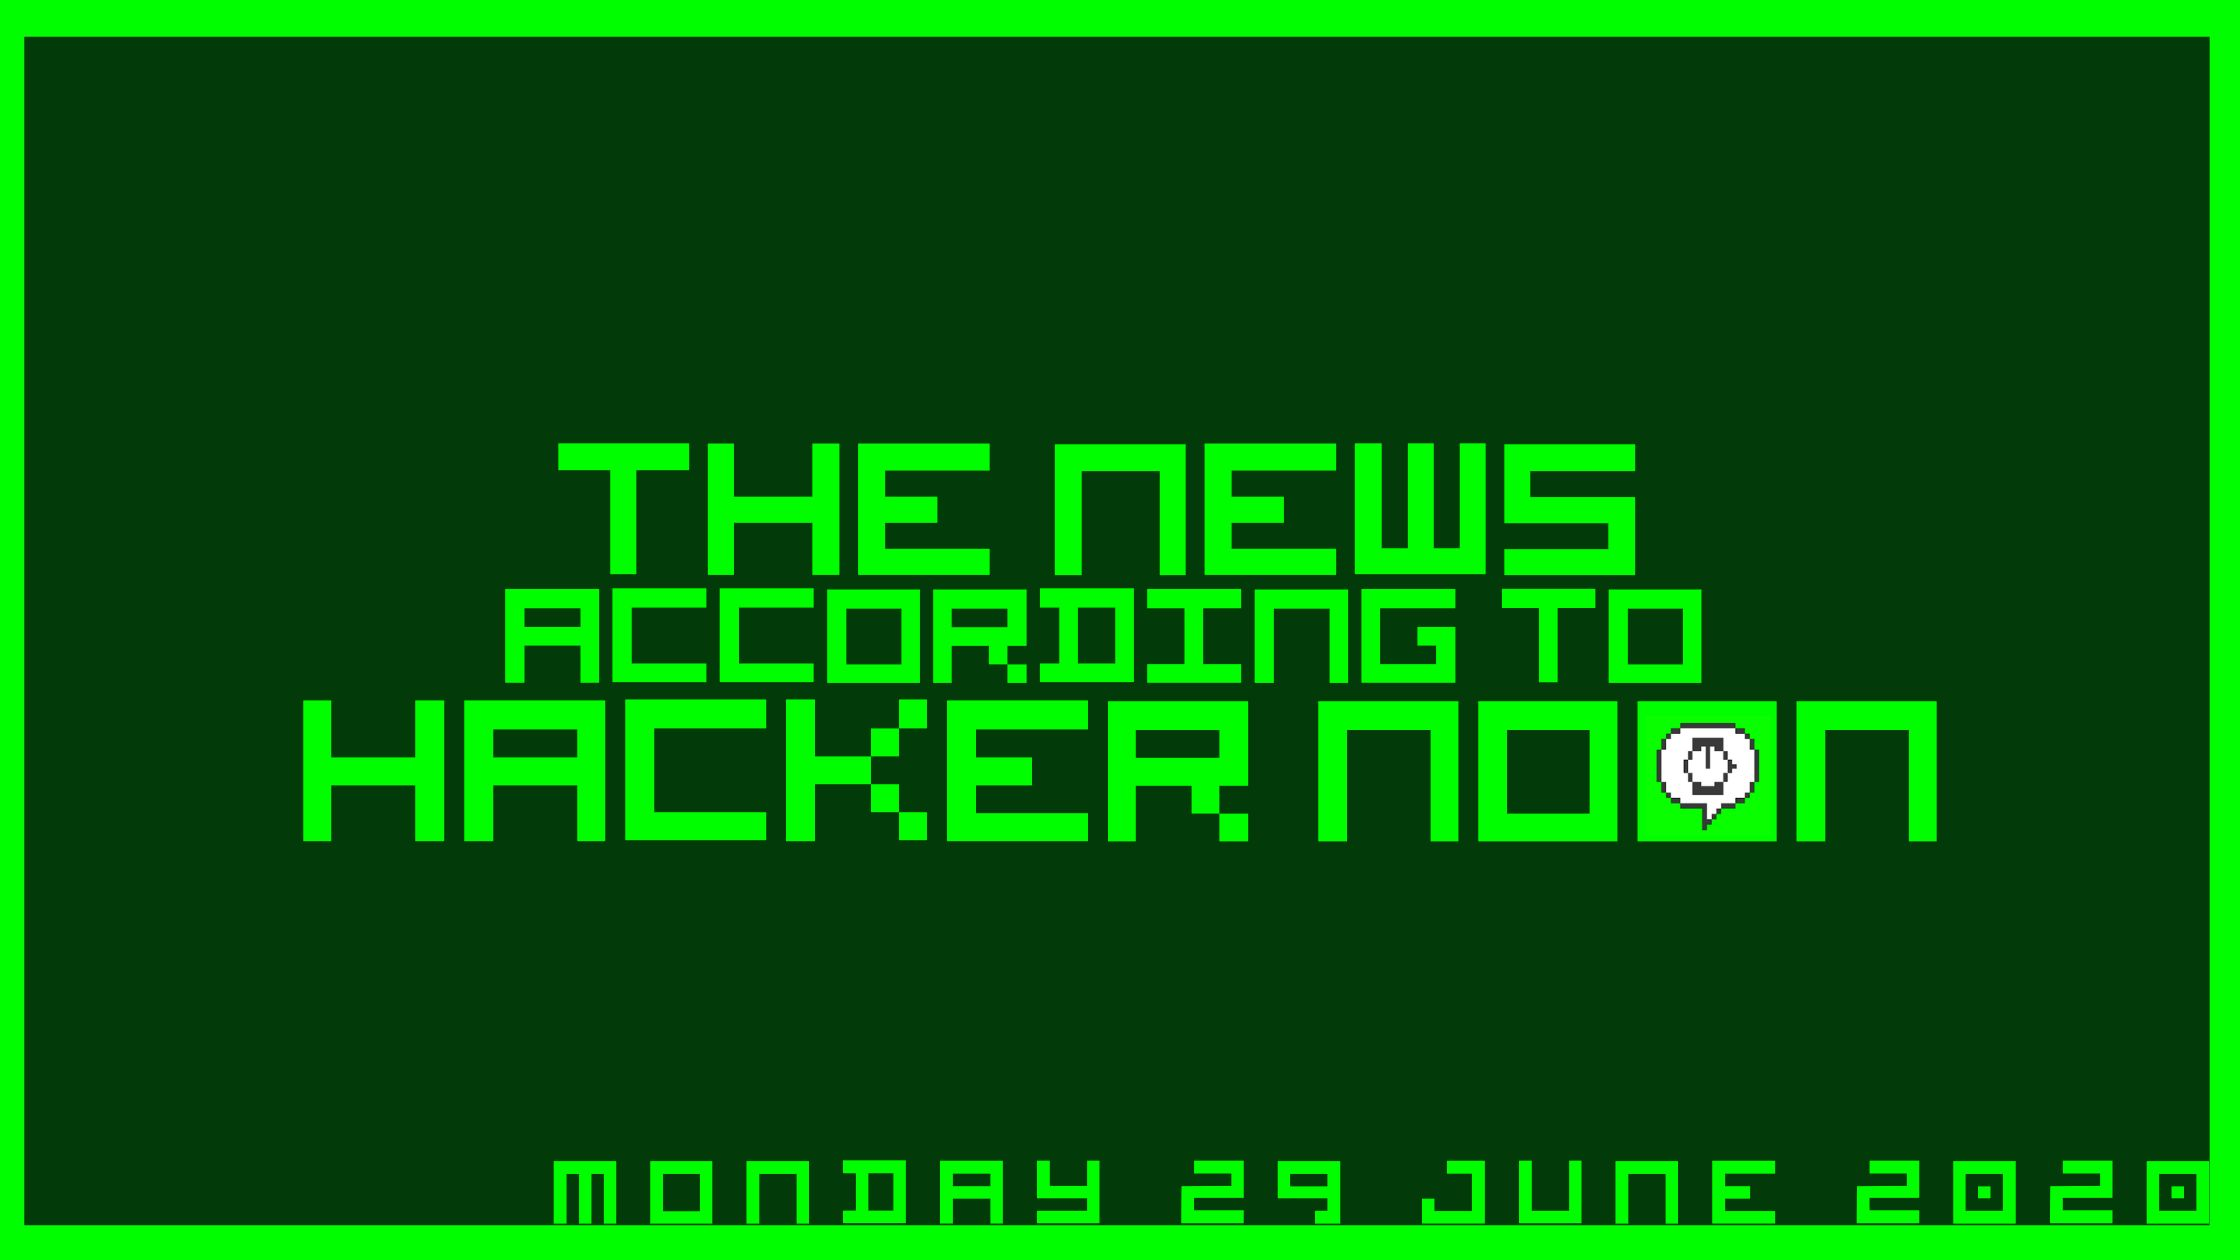 /the-news-according-to-hacker-noon-monday-29-june-2020-d6dh3ugb feature image